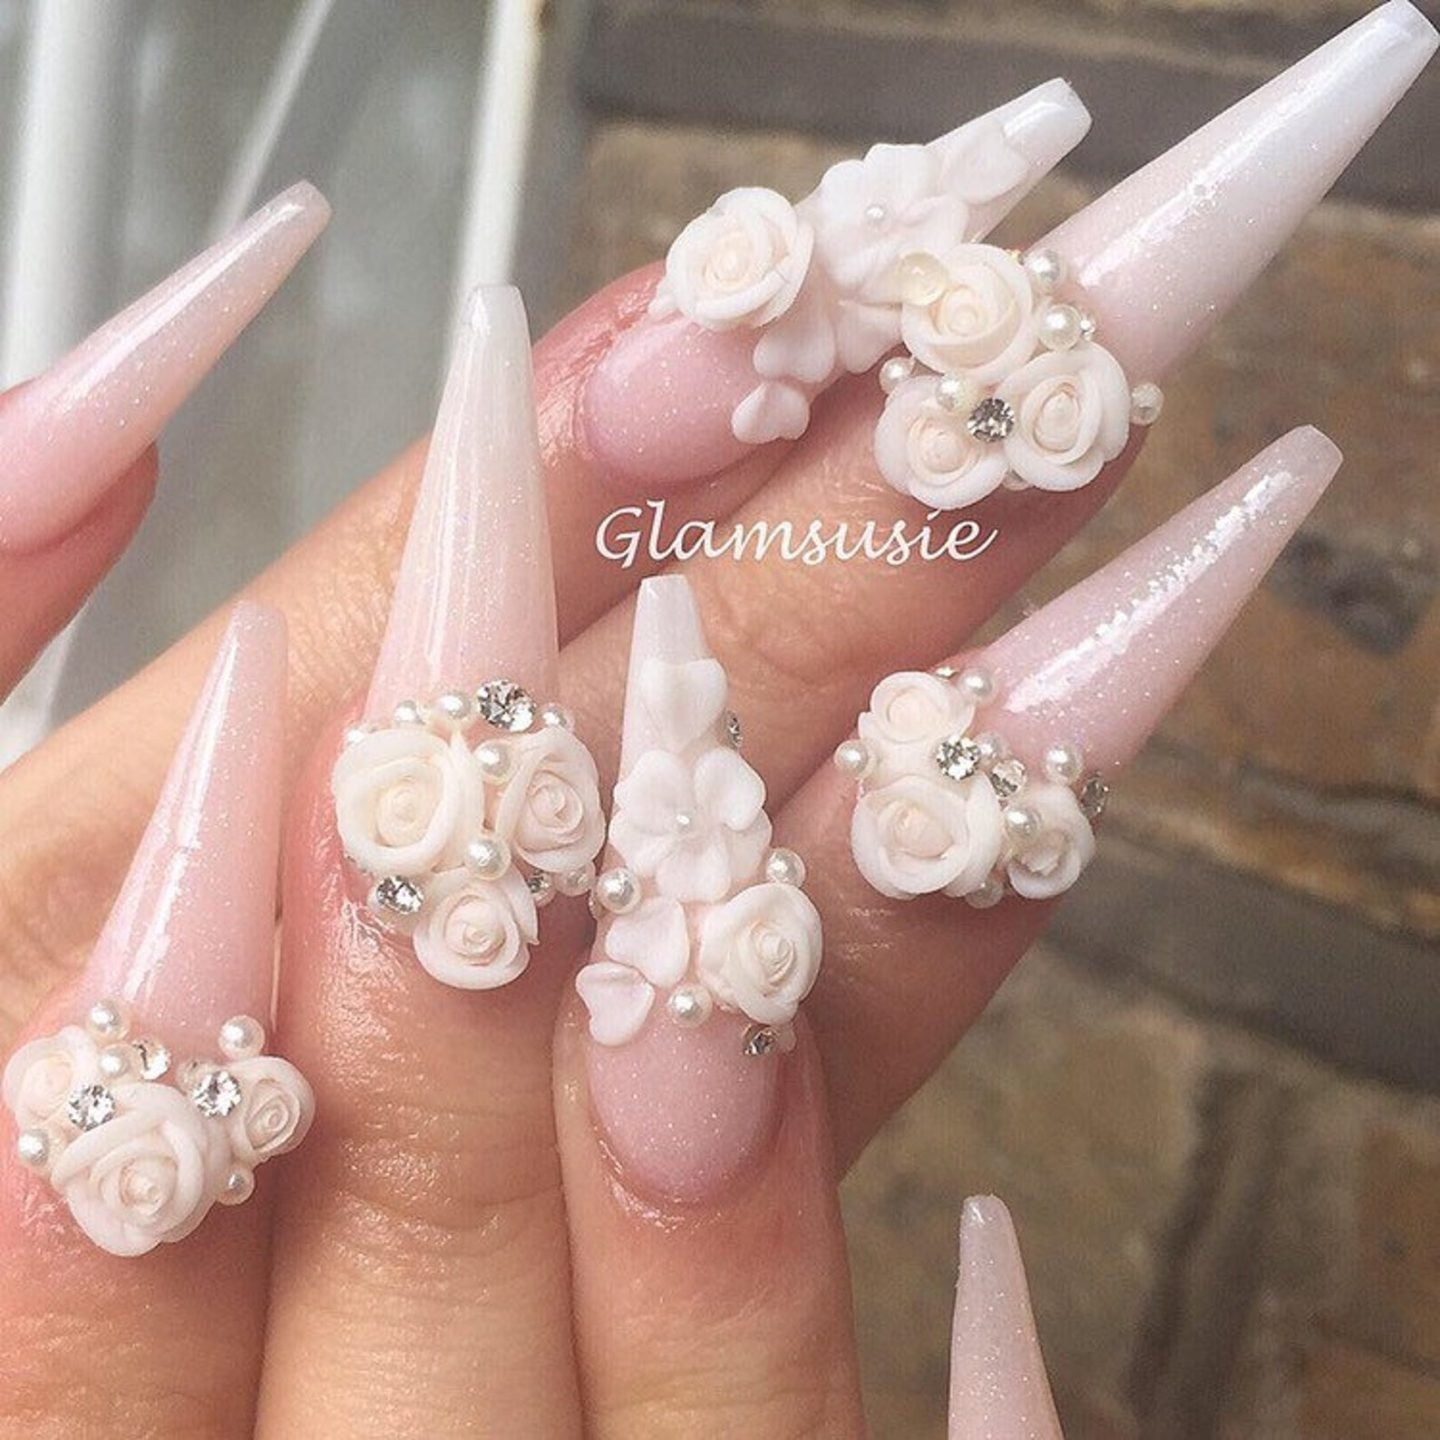 Glamorous white wedding nails with roses and flowers